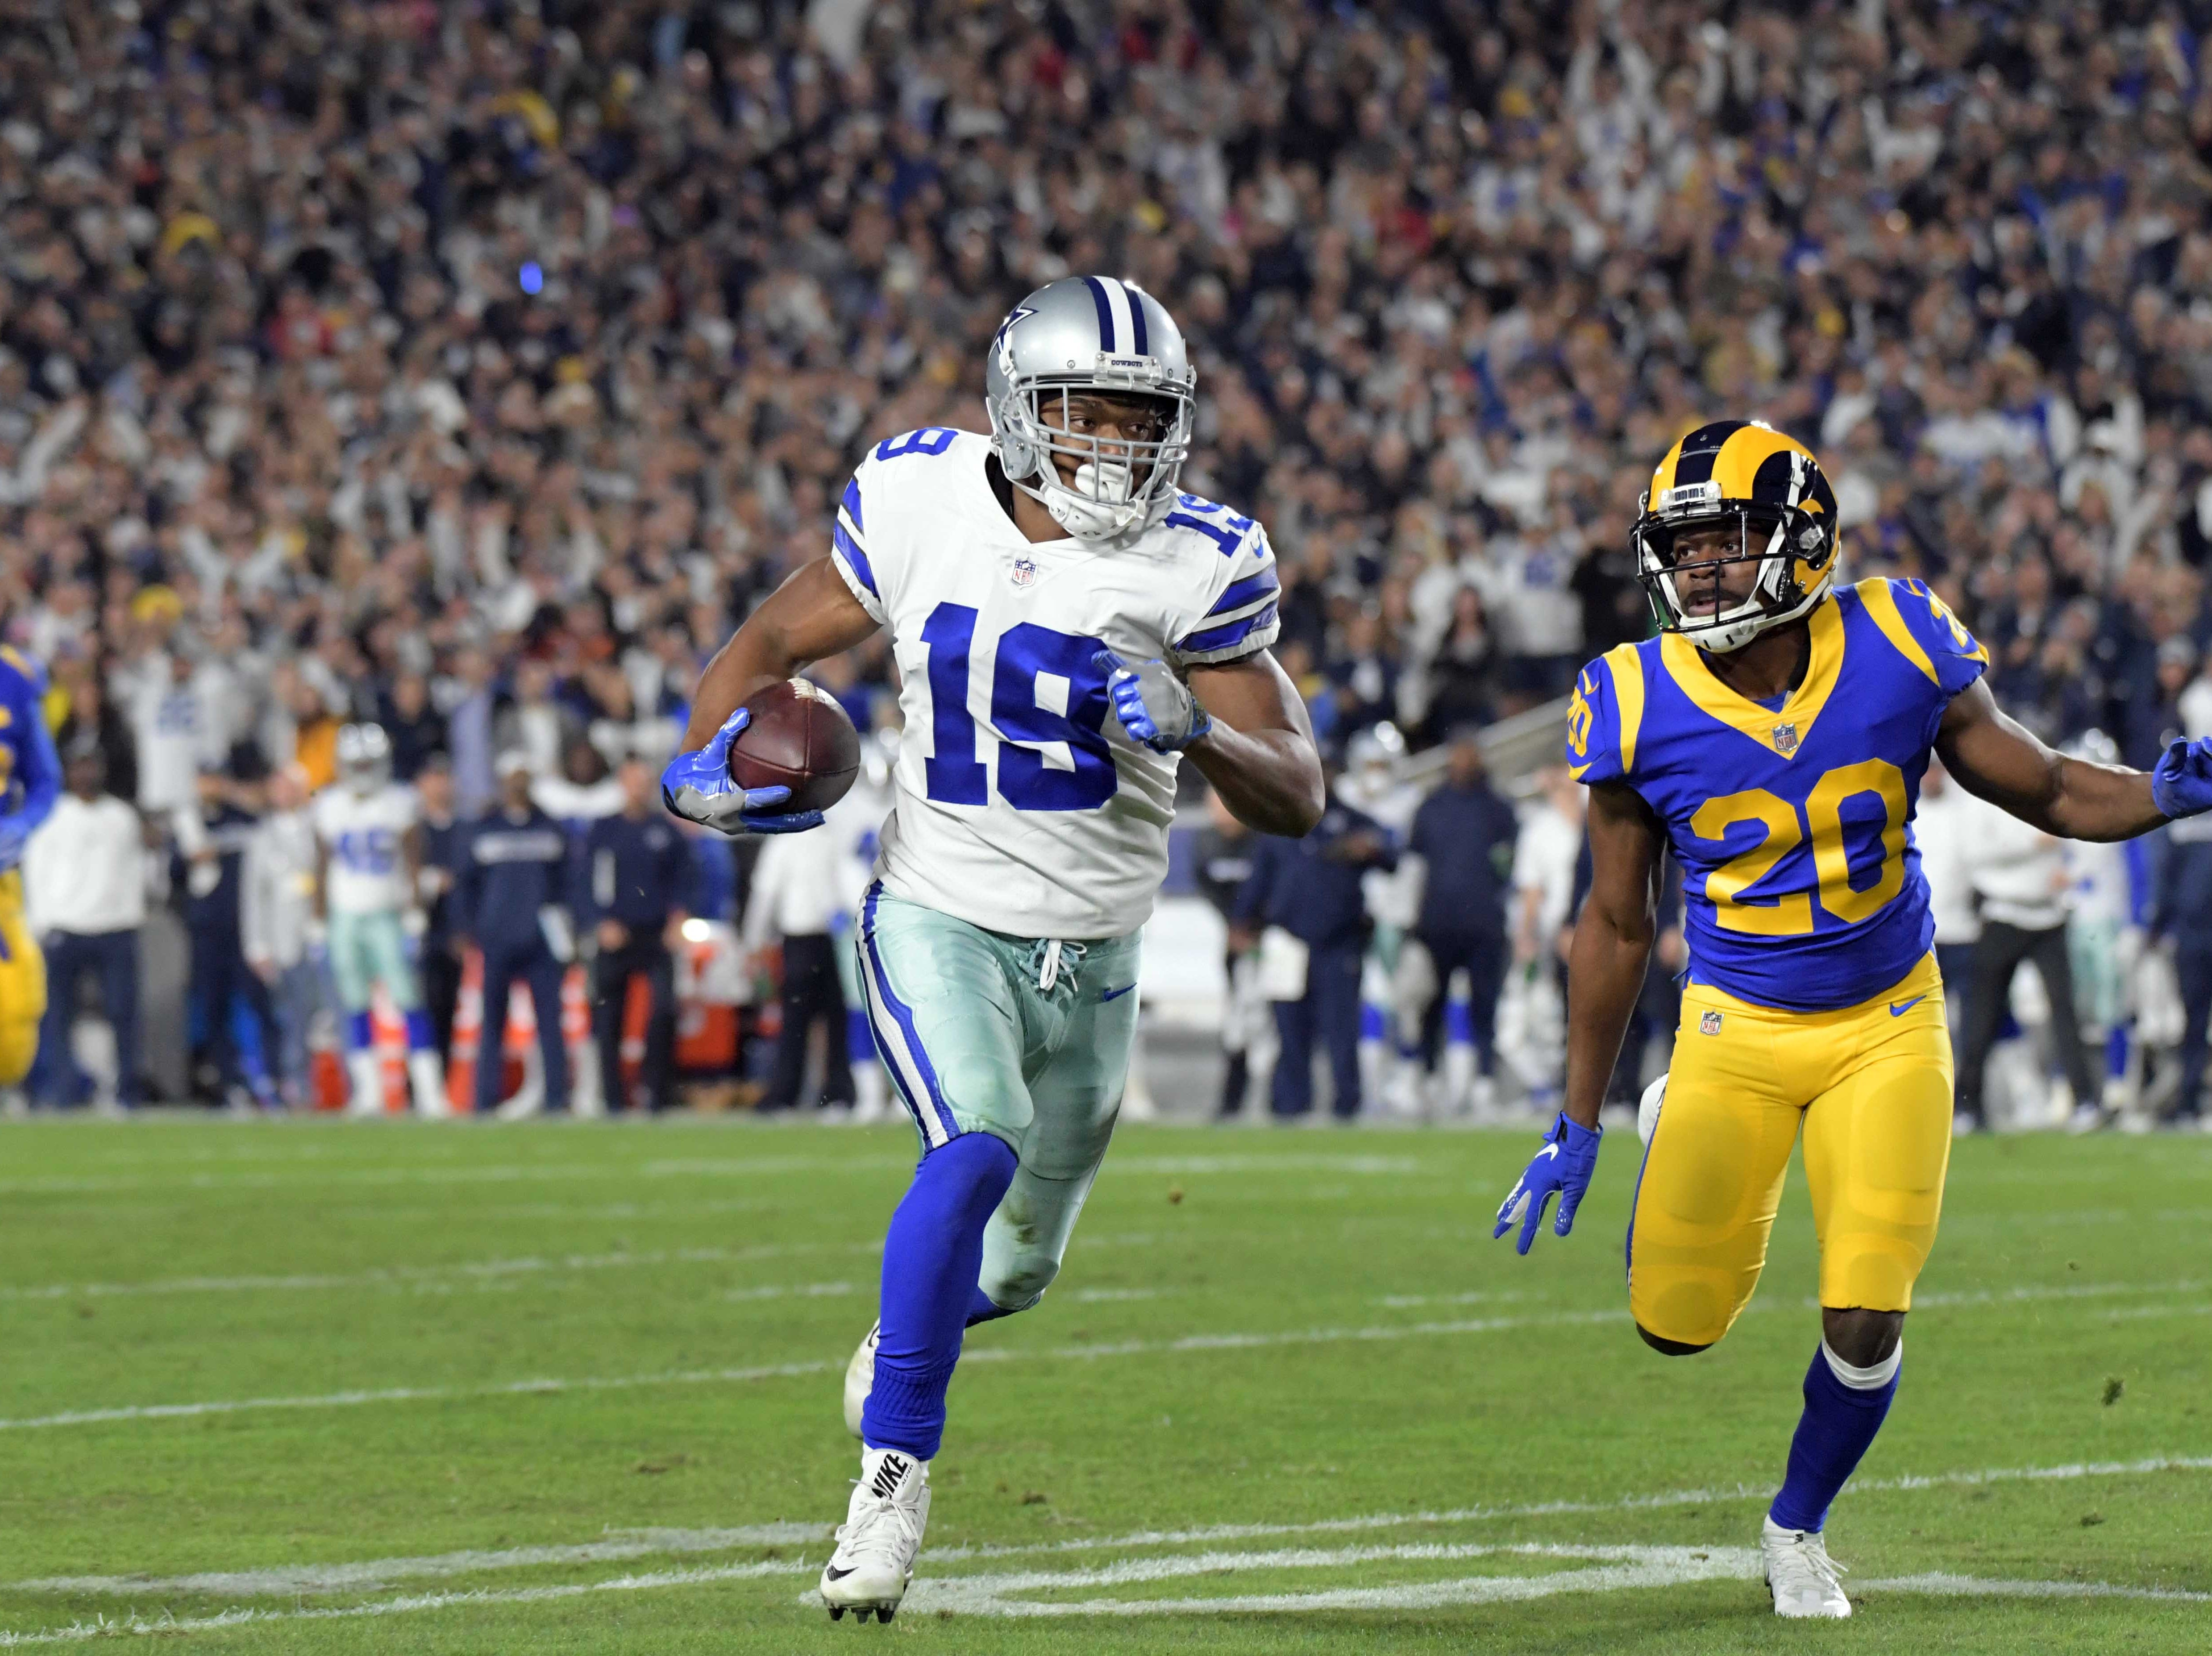 Jan 12, 2019; Los Angeles, CA, USA; Dallas Cowboys wide receiver Amari Cooper (19) runs the ball as Los Angeles Rams free safety Lamarcus Joyner (20) moves to defend during the first half in a NFC Divisional playoff football game at Los Angeles Memorial Coliseum. Mandatory Credit: Kirby Lee-USA TODAY Sports